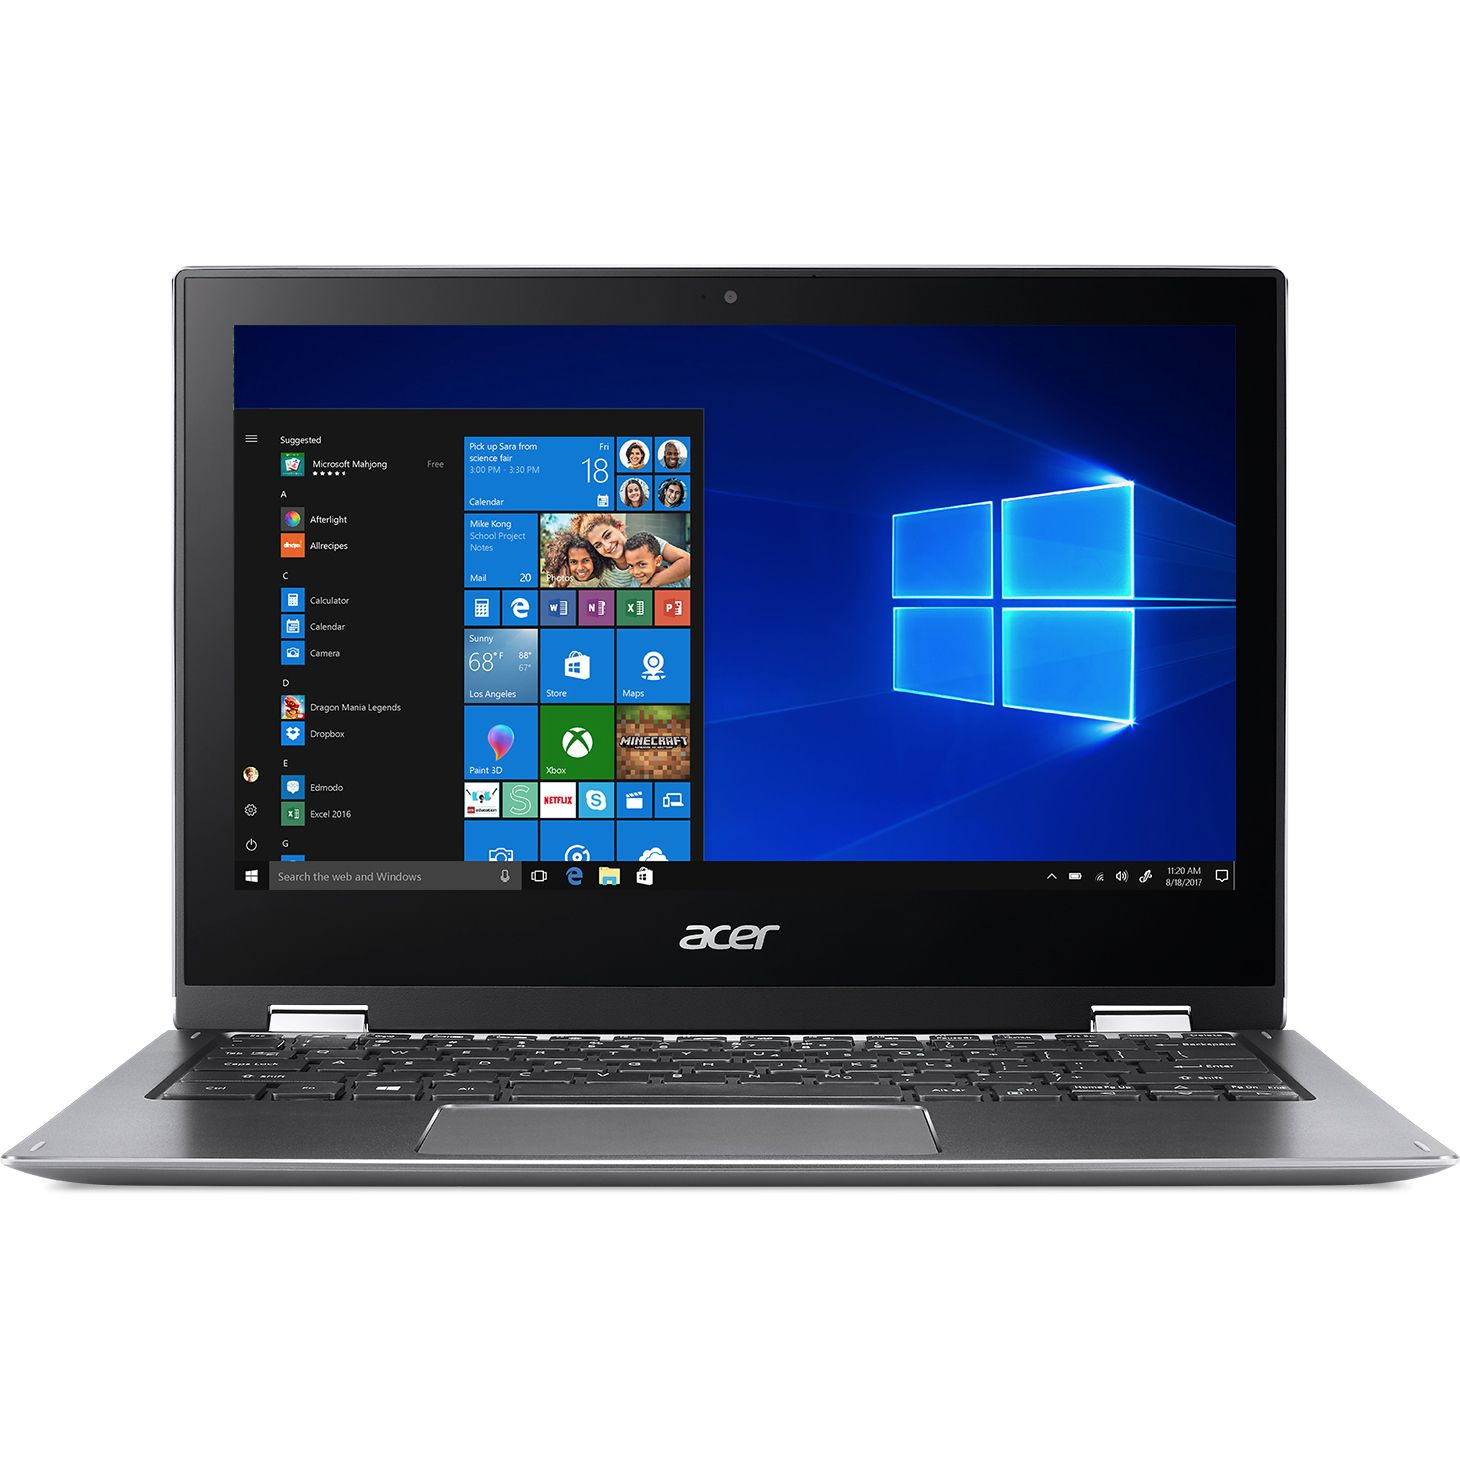 Ultrabook Acer Spin SP111-32N 11.6 Full HD Touch Intel Pentium N4200 RAM 4GB eMMC 64GB Windows 10 S Gri